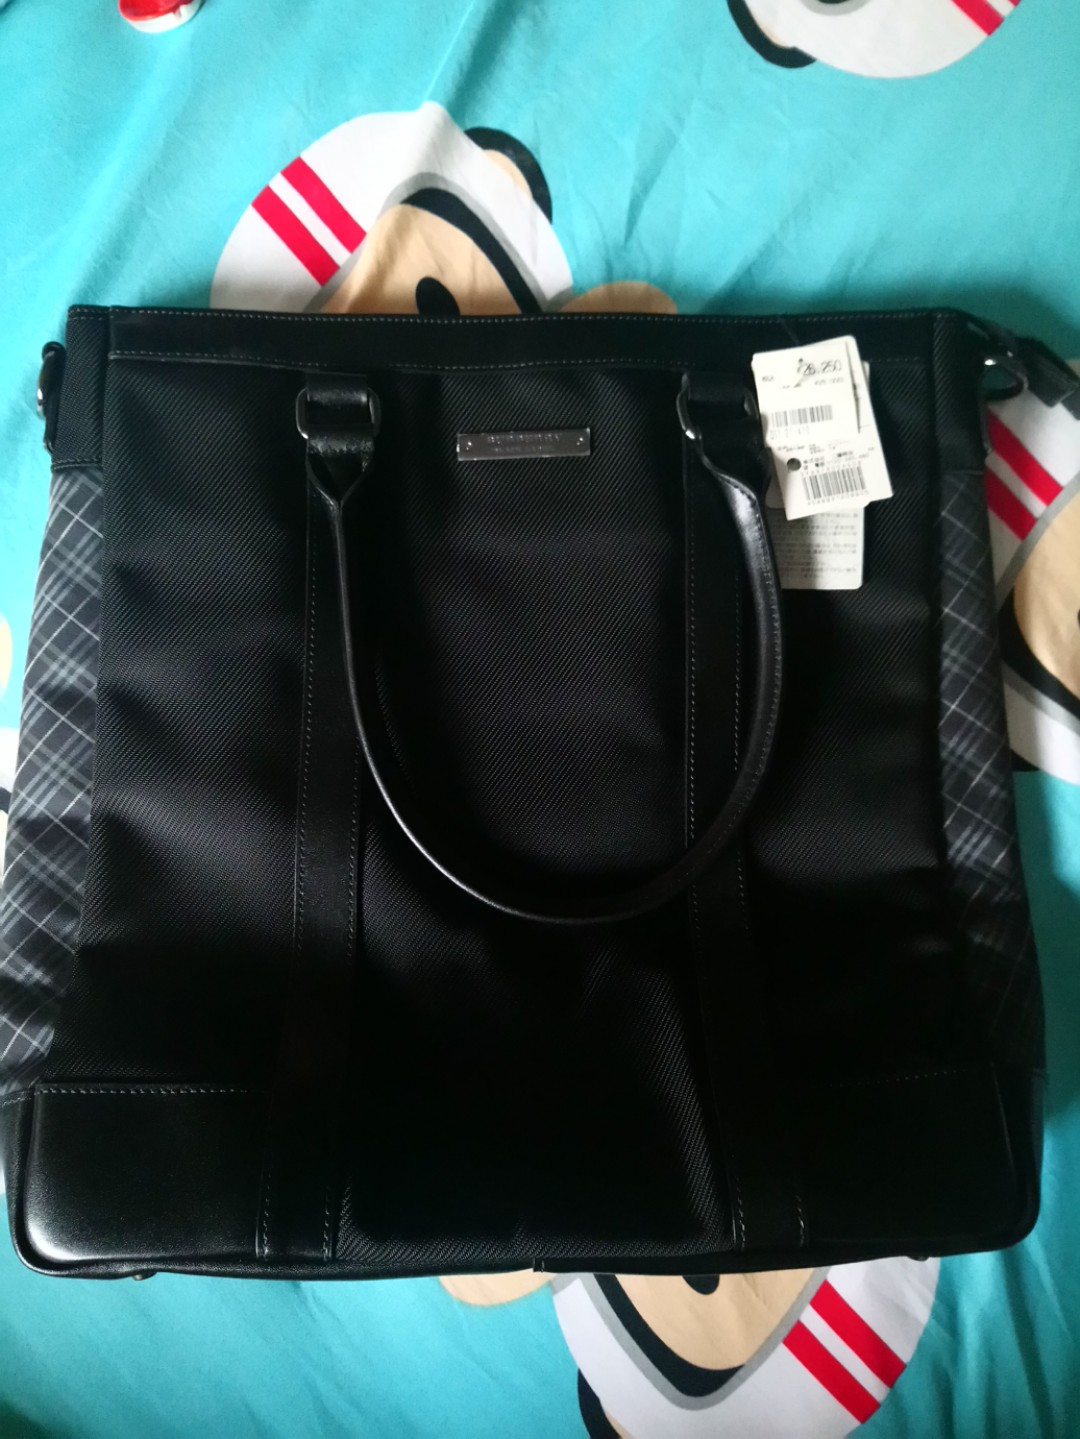 184e8317baff Burberry Black Label Tote bag